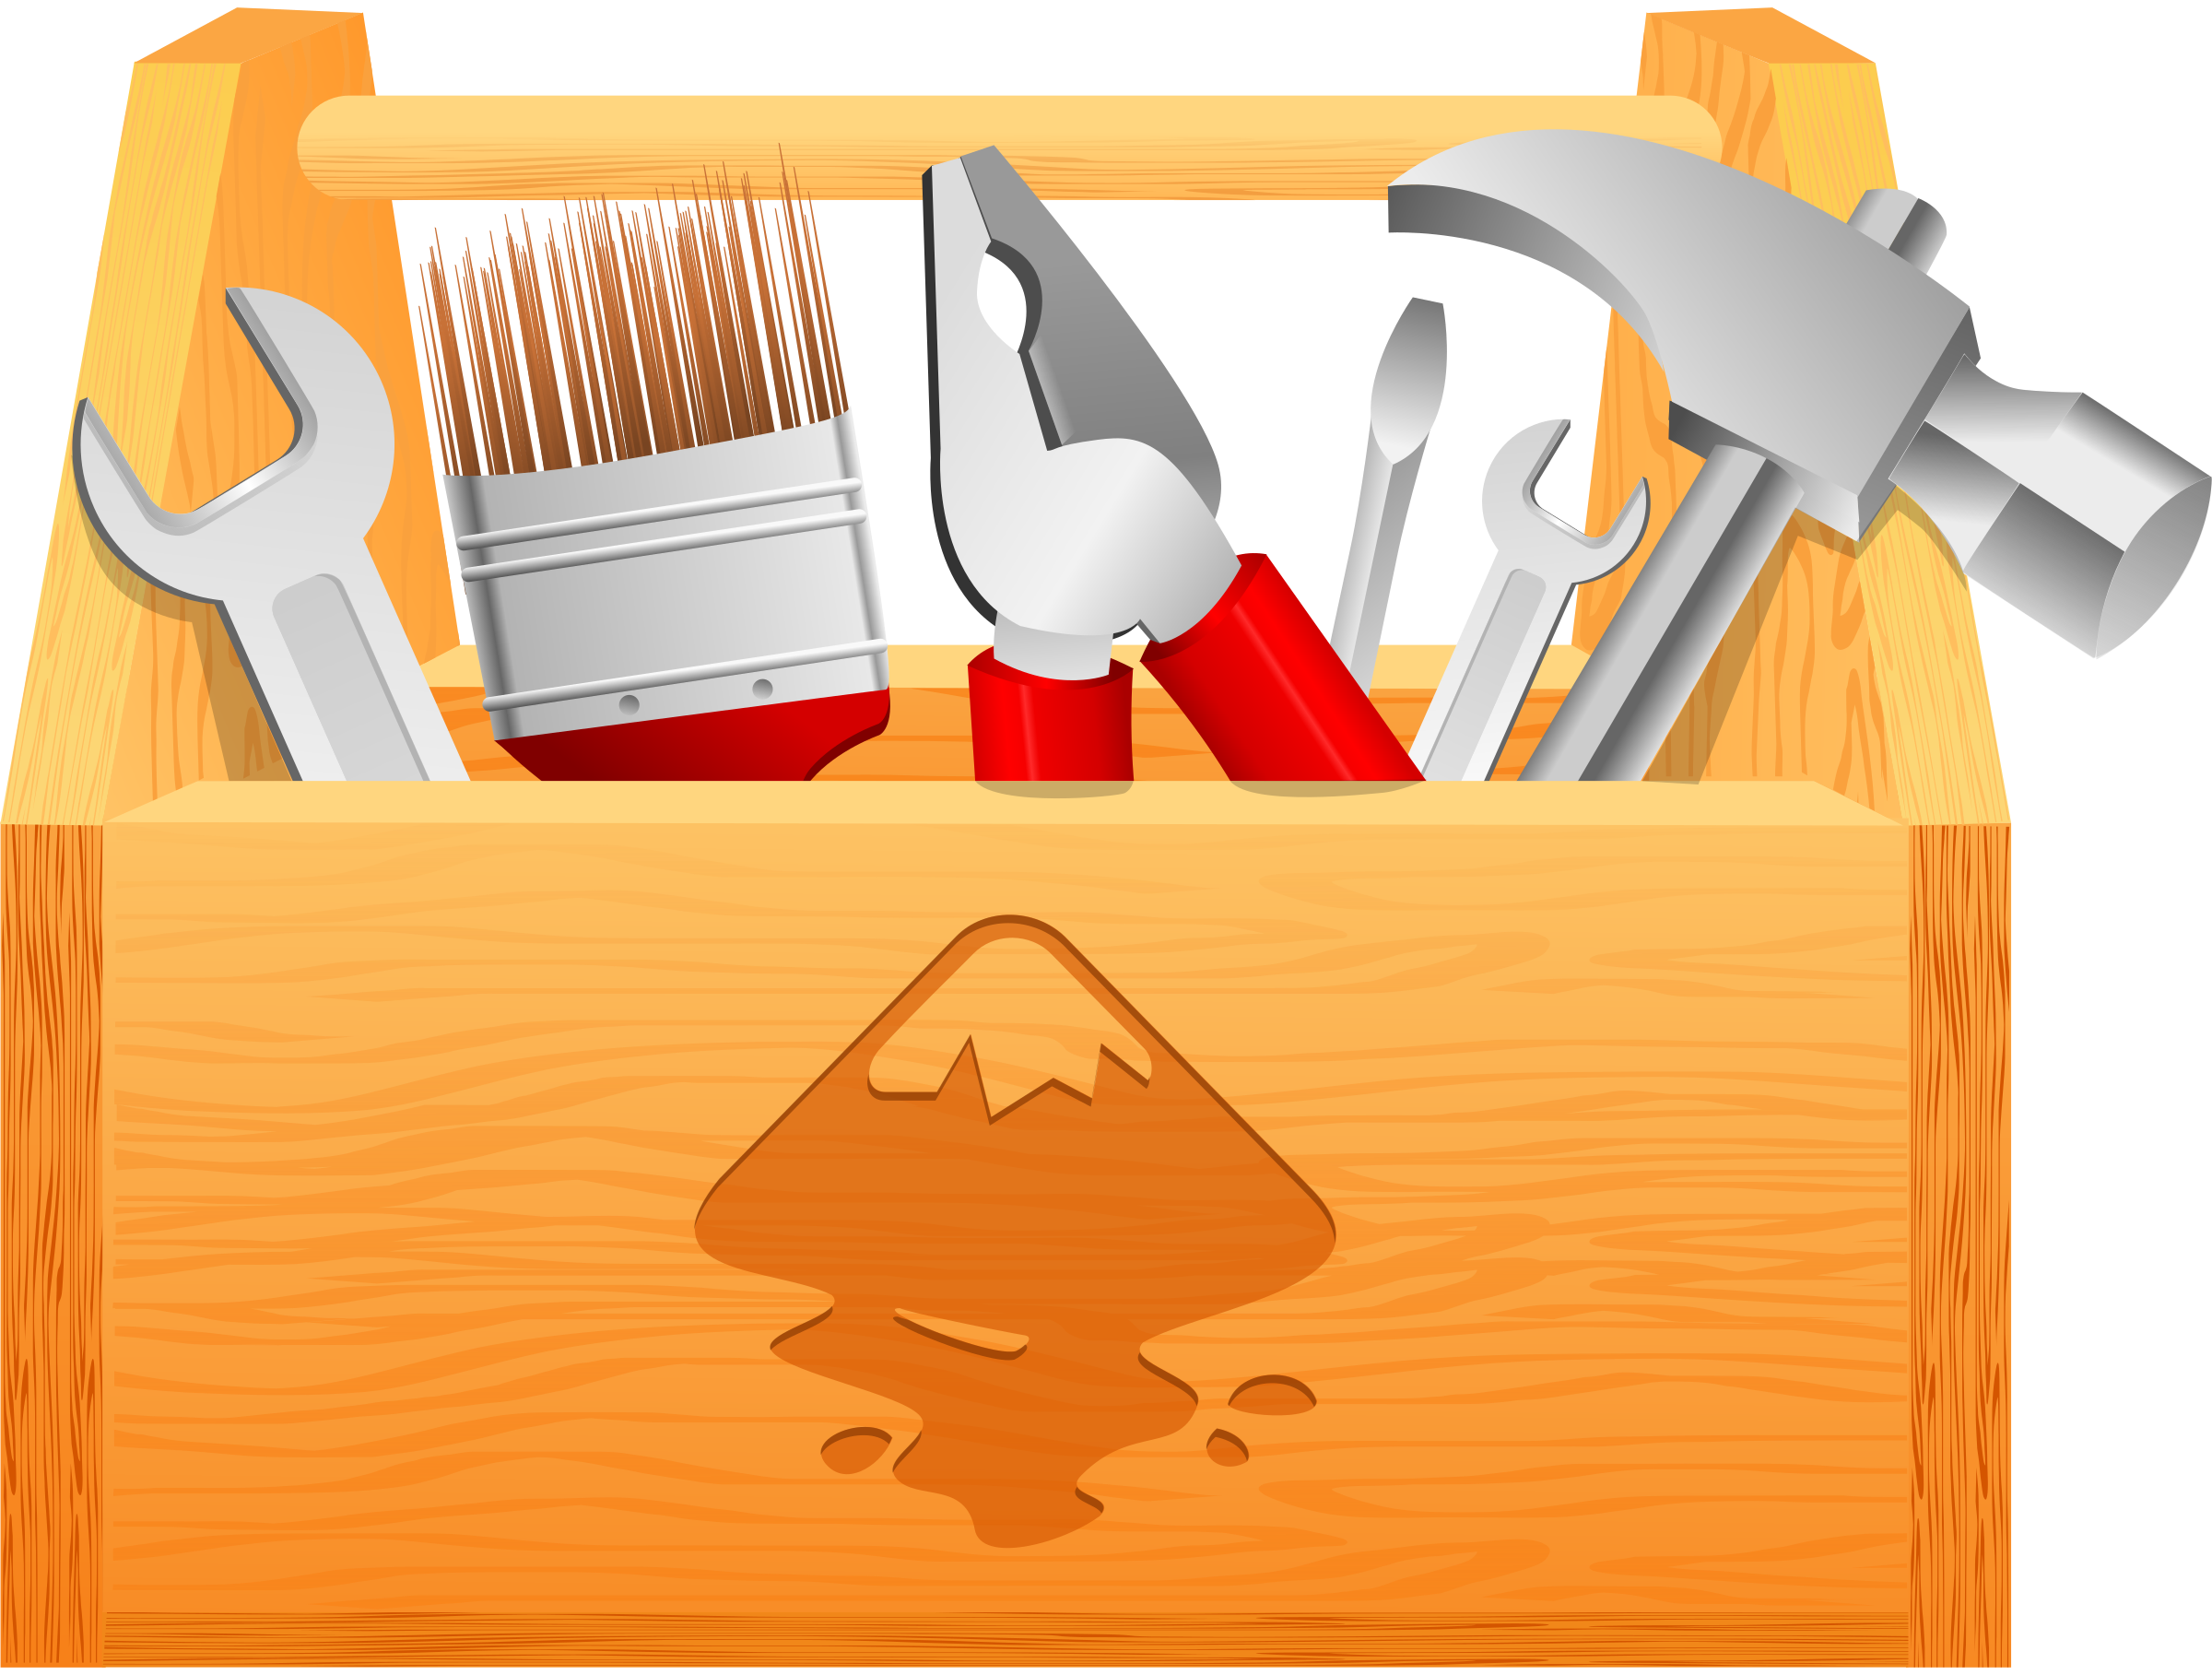 Toolbox big image png. Clipart hammer h be for